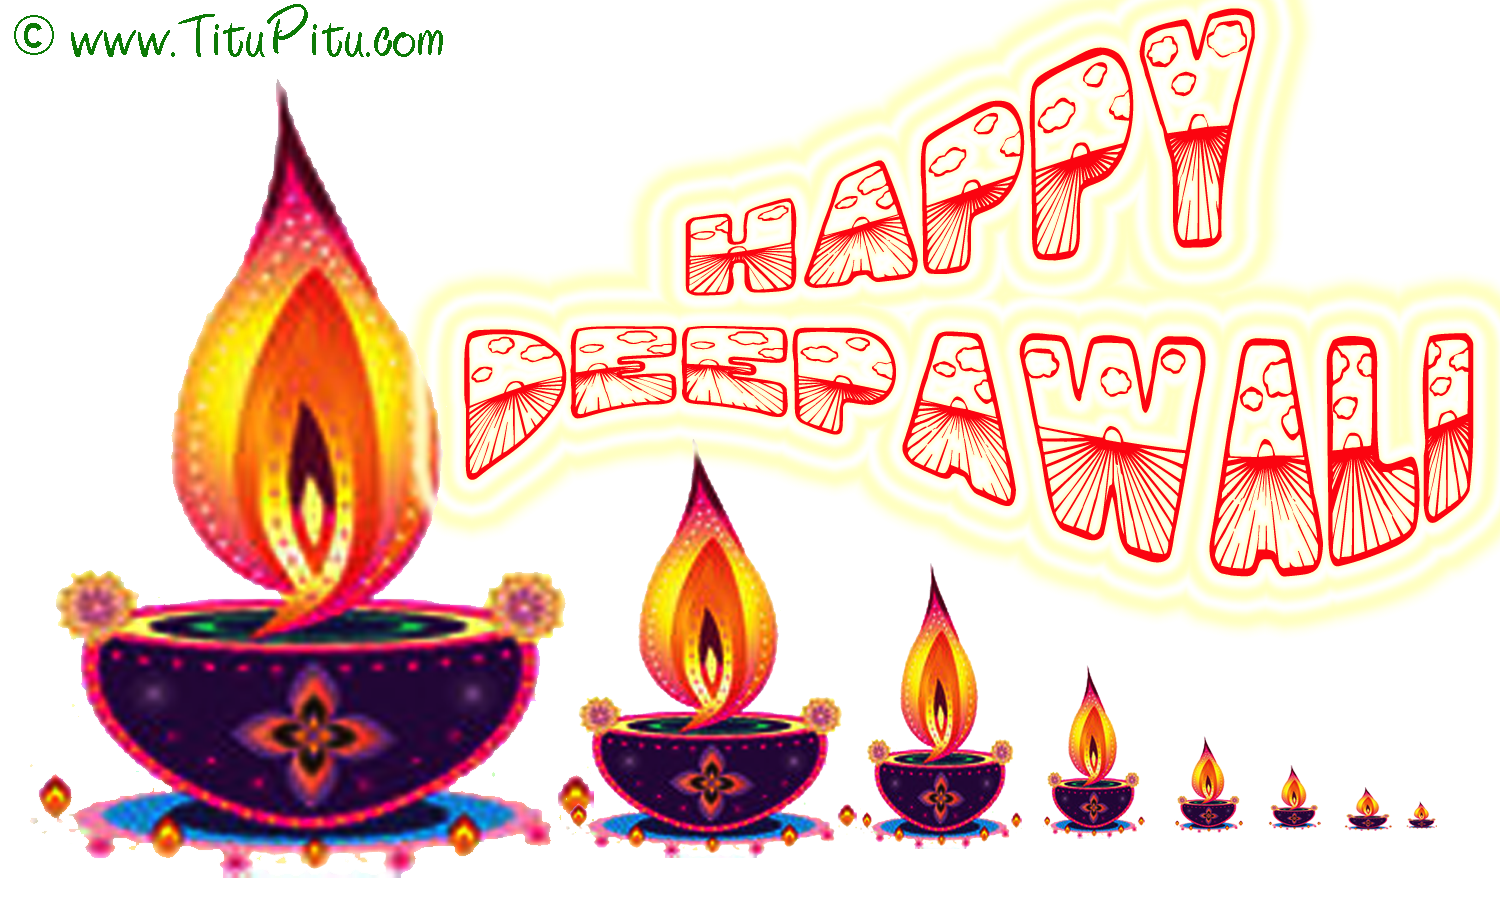 Dussehra Dhanteras Media Diwali Social Whatsapp Happiness PNG Image